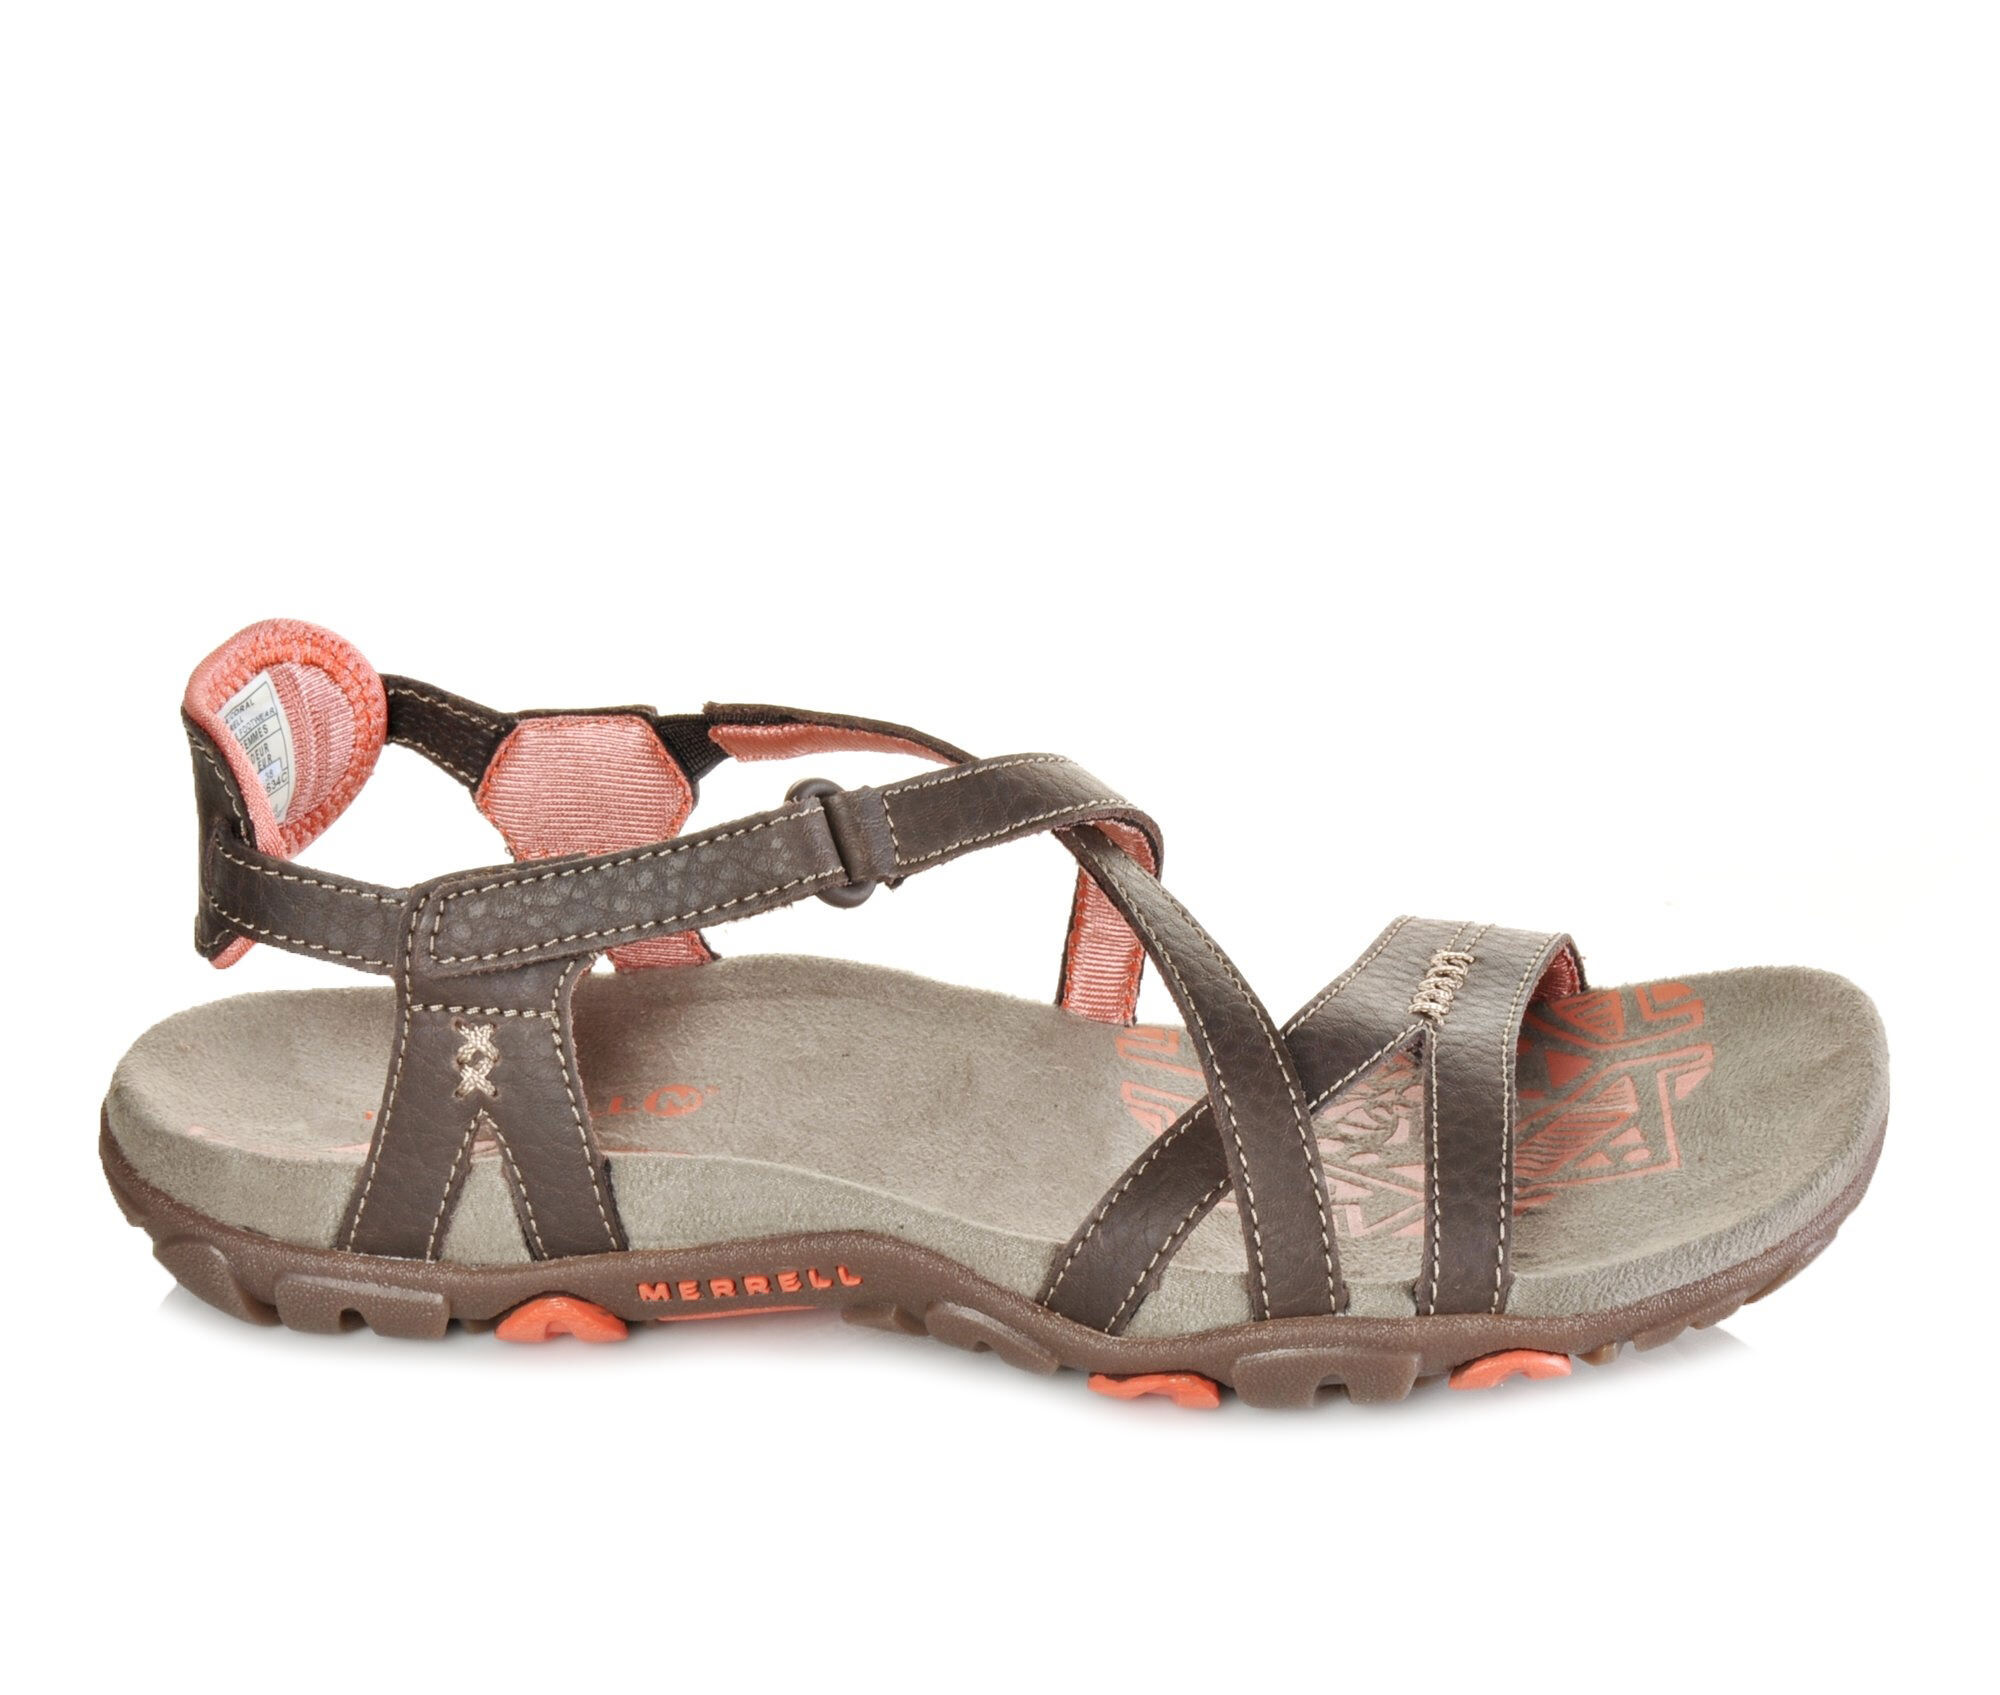 Low prices Women's Merrell Sandspur Rose Leather Hiking Sandals Cocoa/Coral